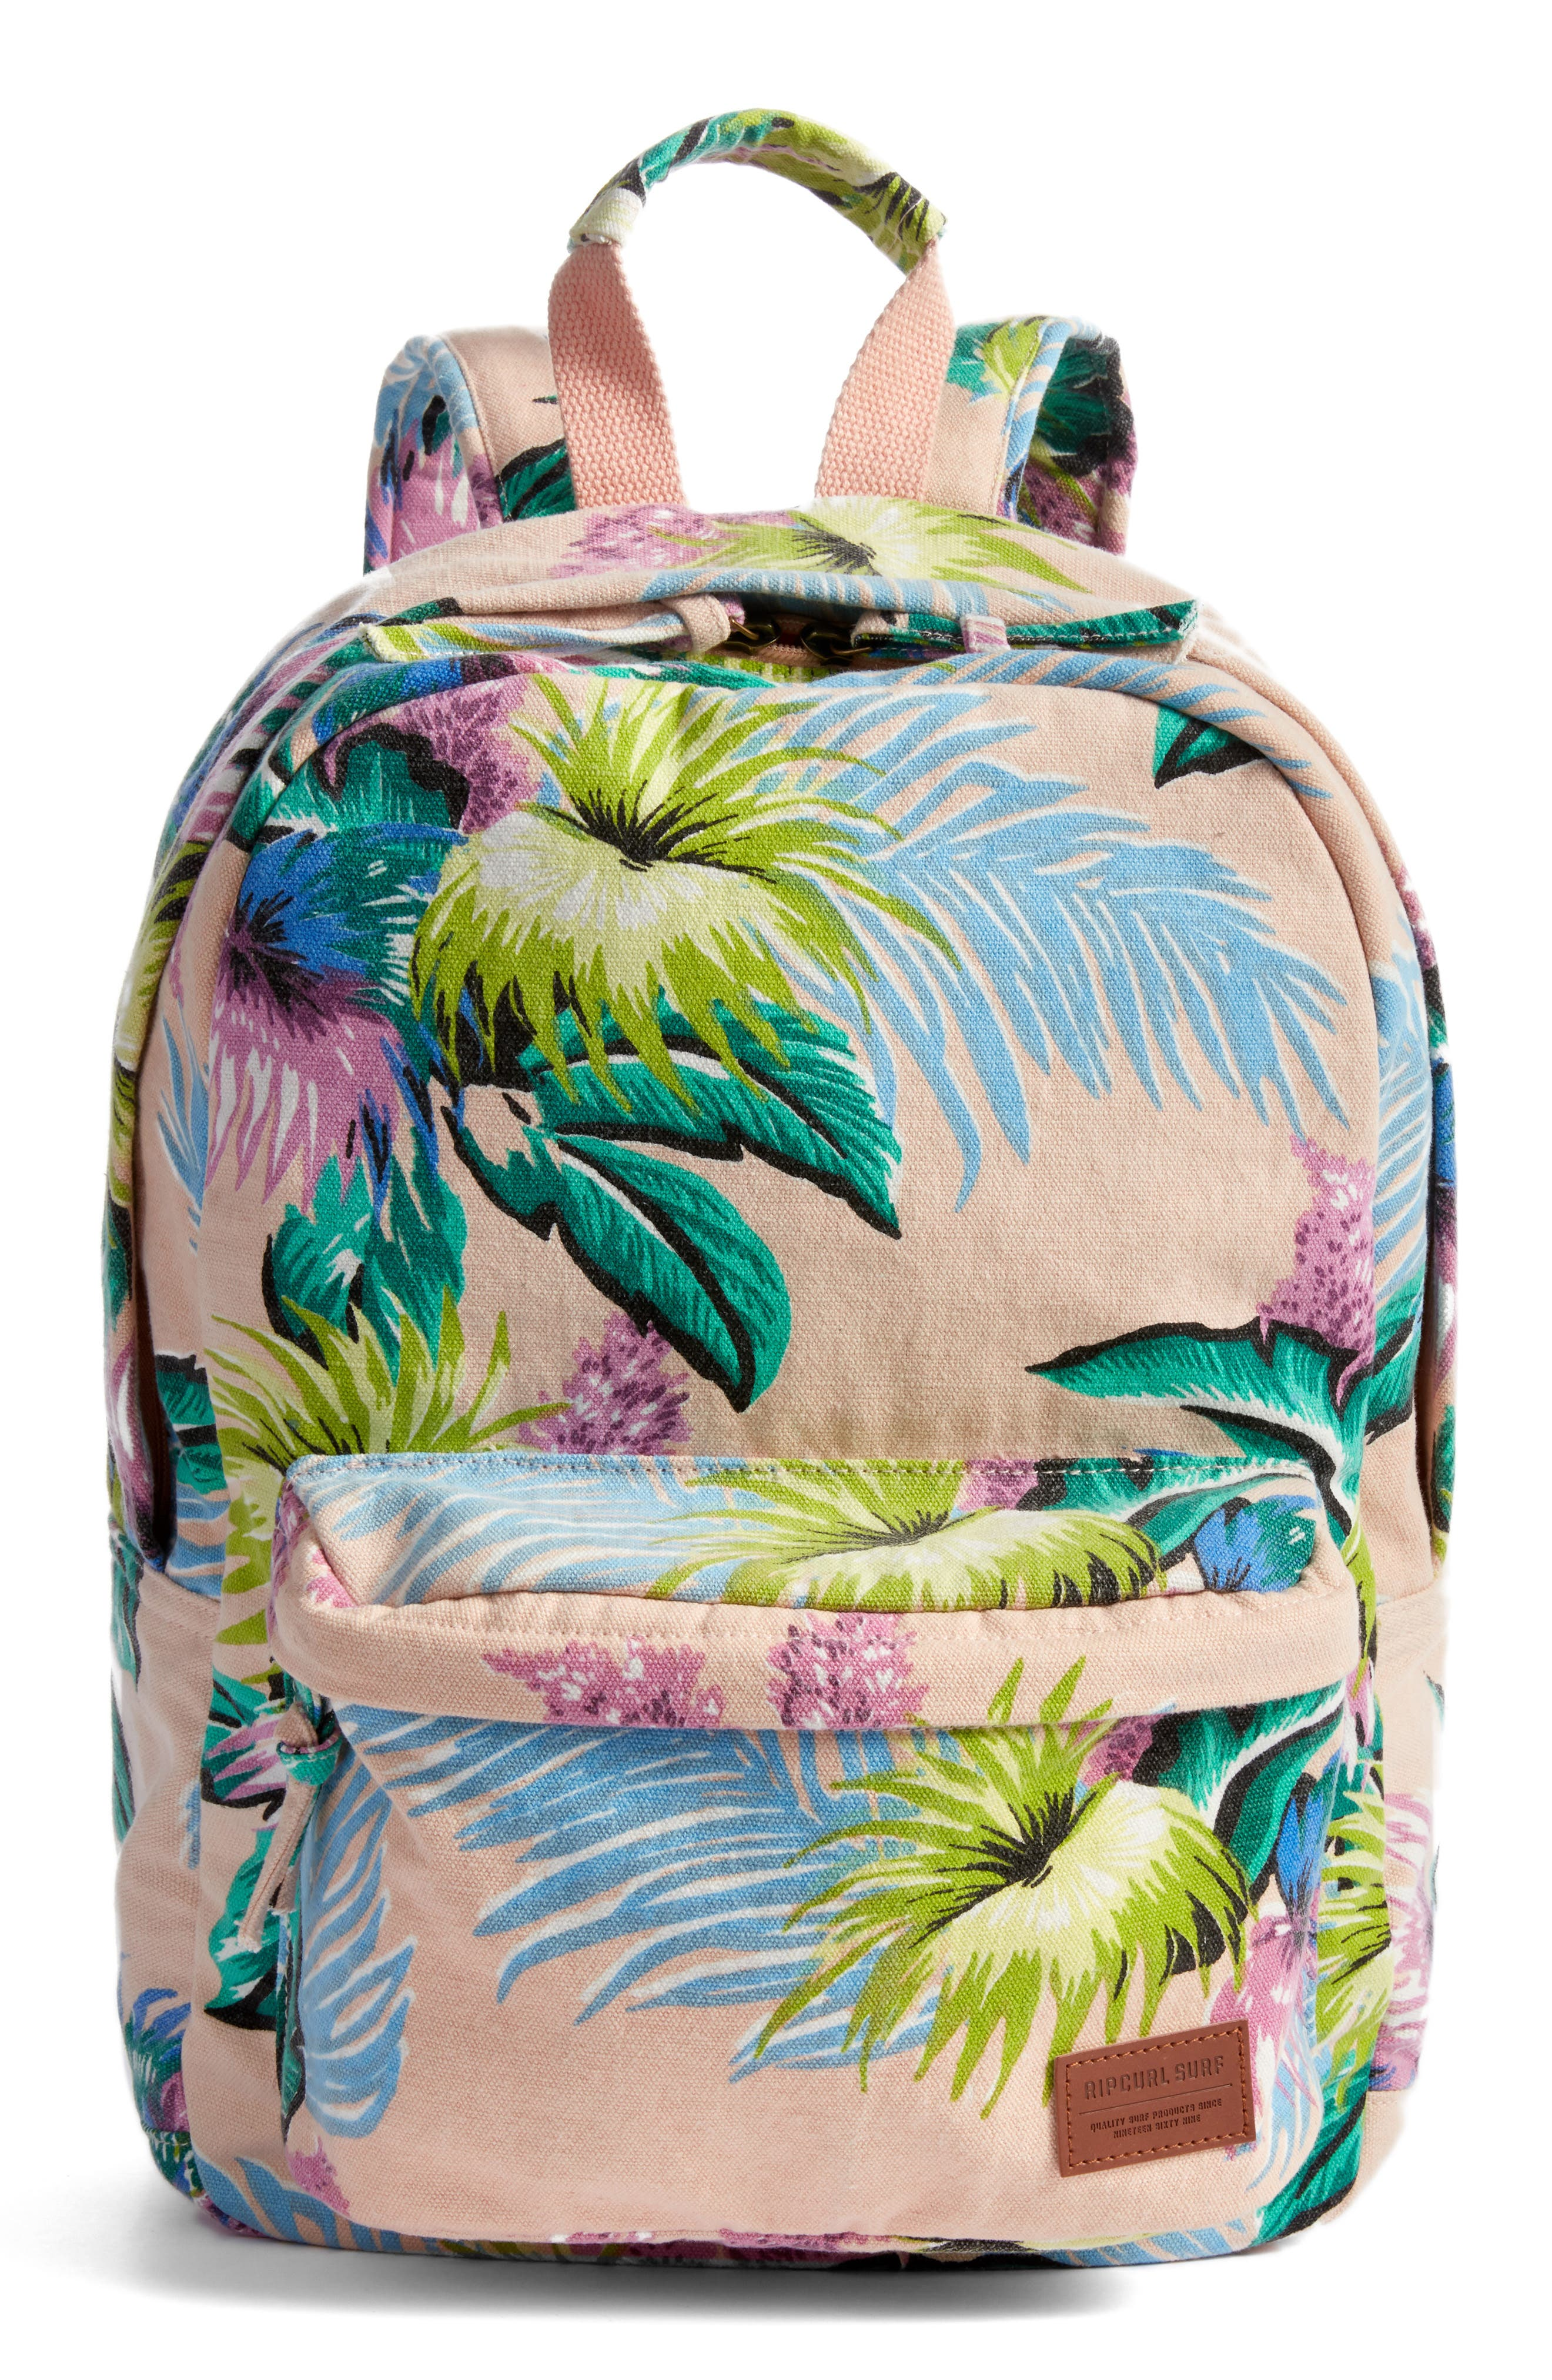 Ophelia Canvas Backpack,                             Main thumbnail 1, color,                             901